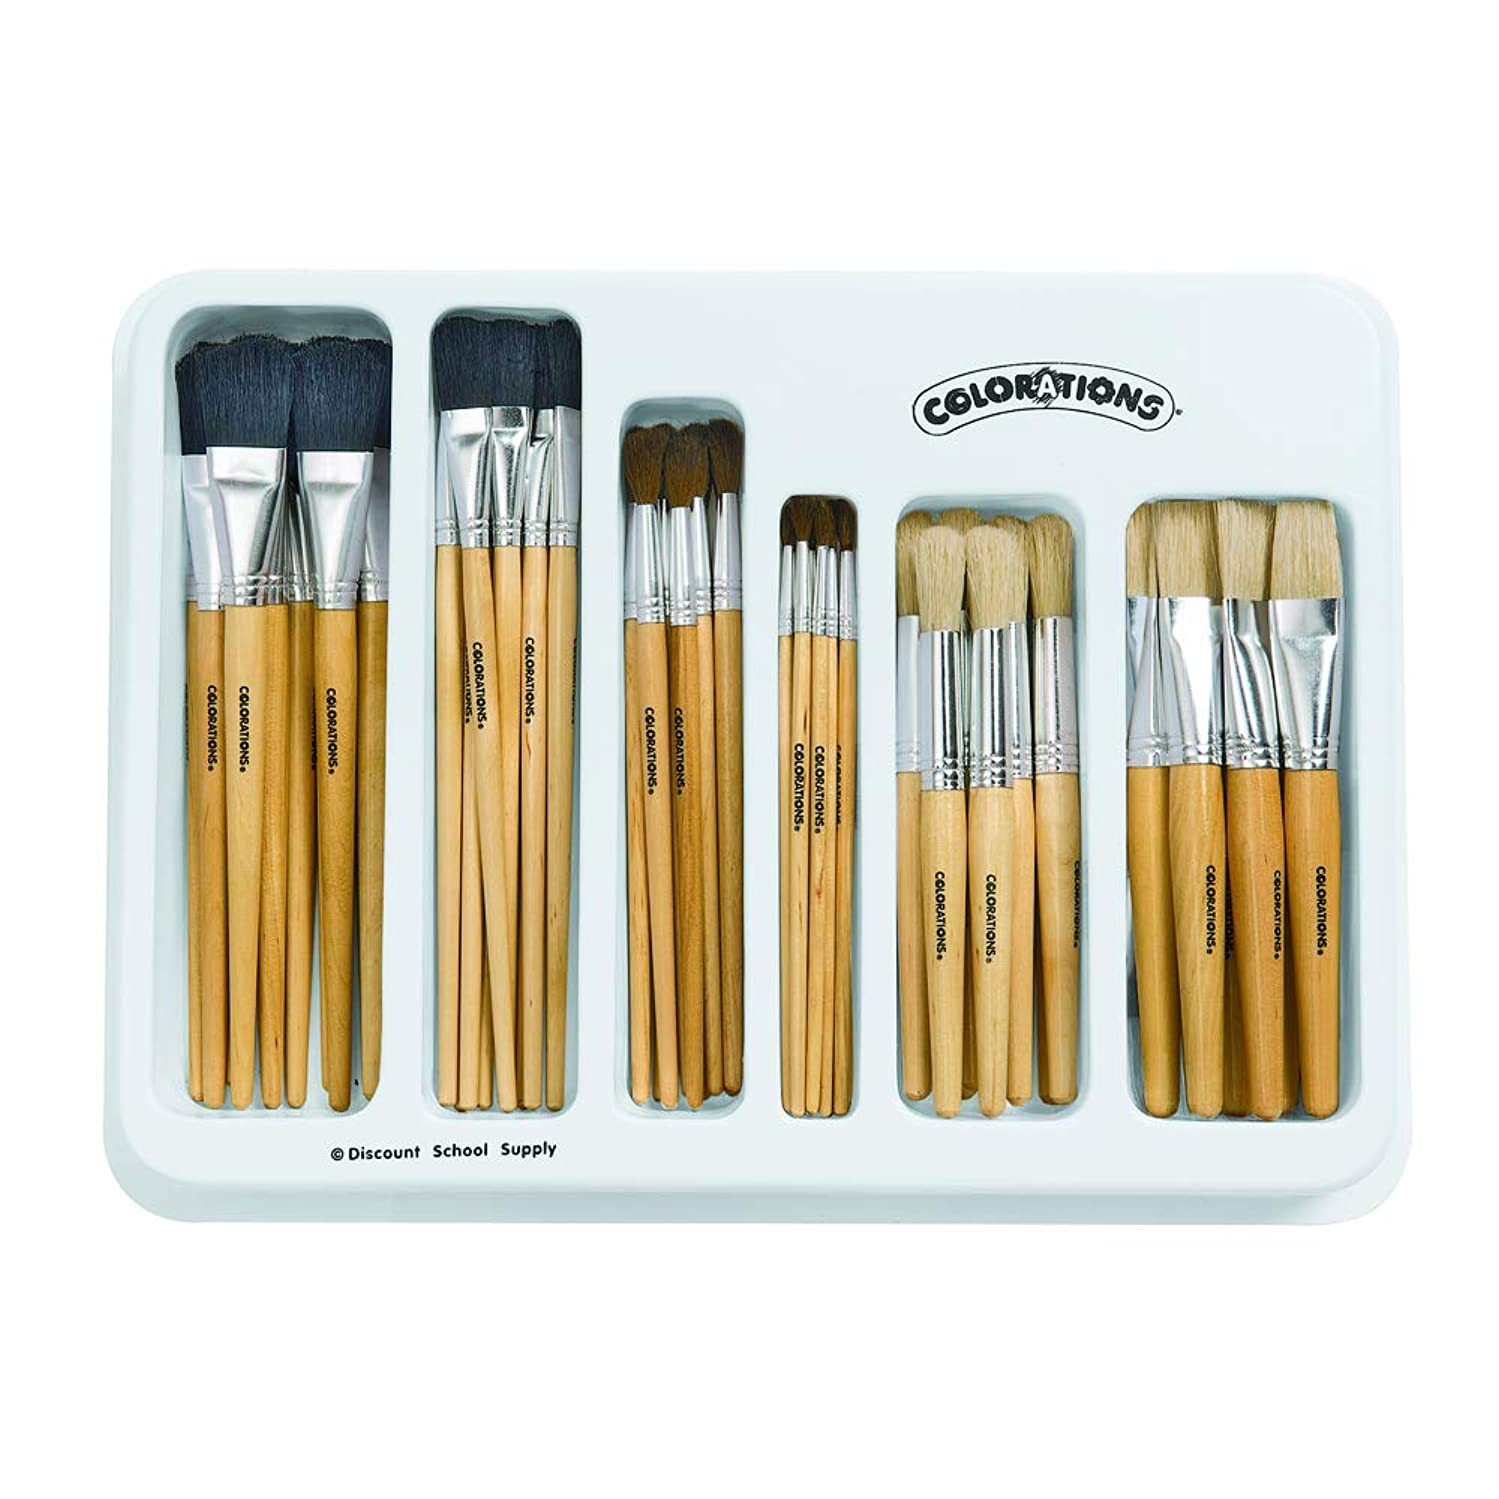 Colorations Natural Paintbrush Classroom Set Multipack Arts and Crafts Material for Kids (72 Brushes)